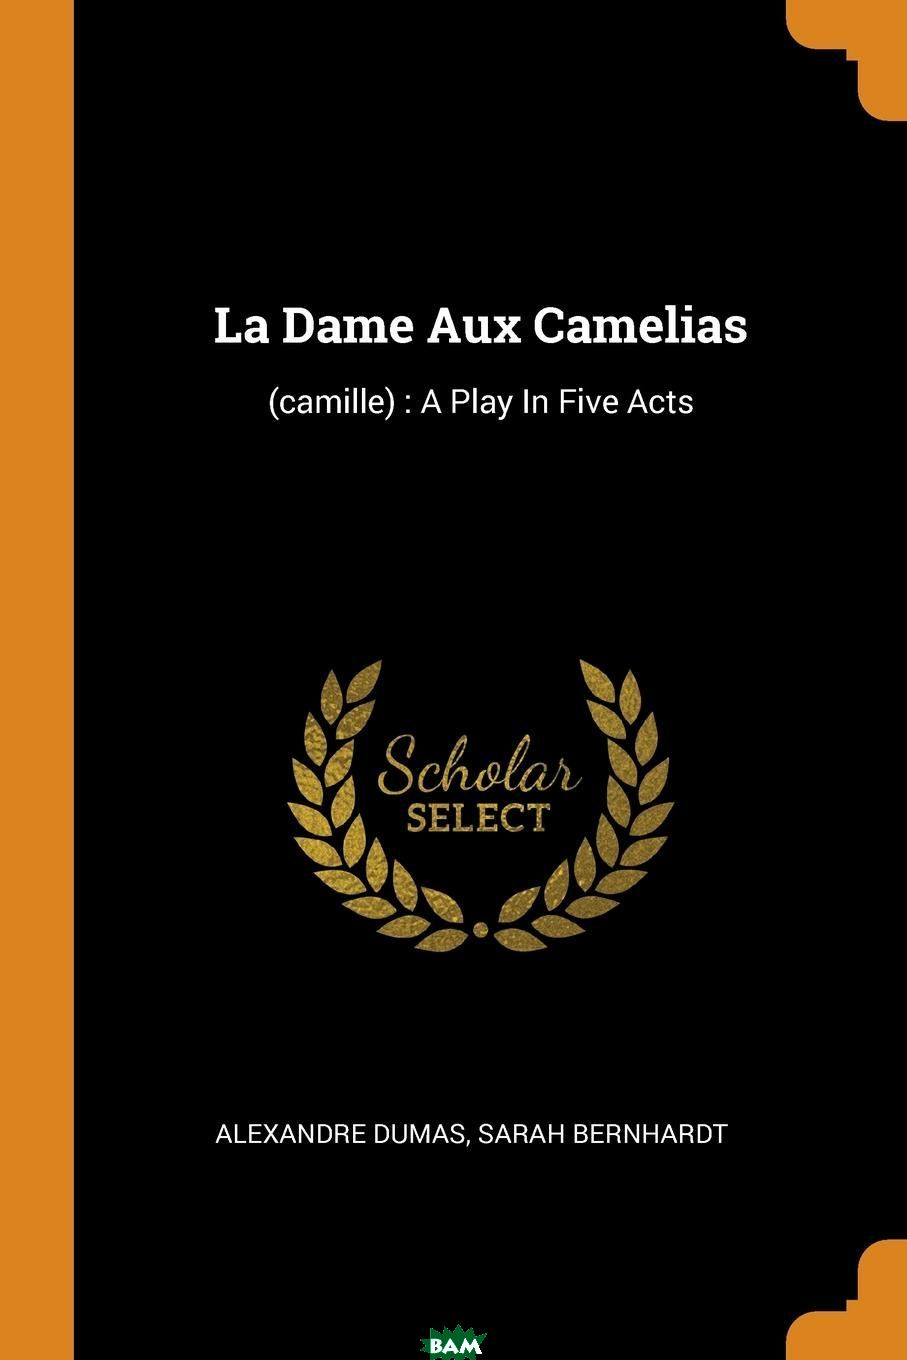 Купить La Dame Aux Camelias. (camille) : A Play In Five Acts, Александр Дюма, Sarah Bernhardt, 9780353614864